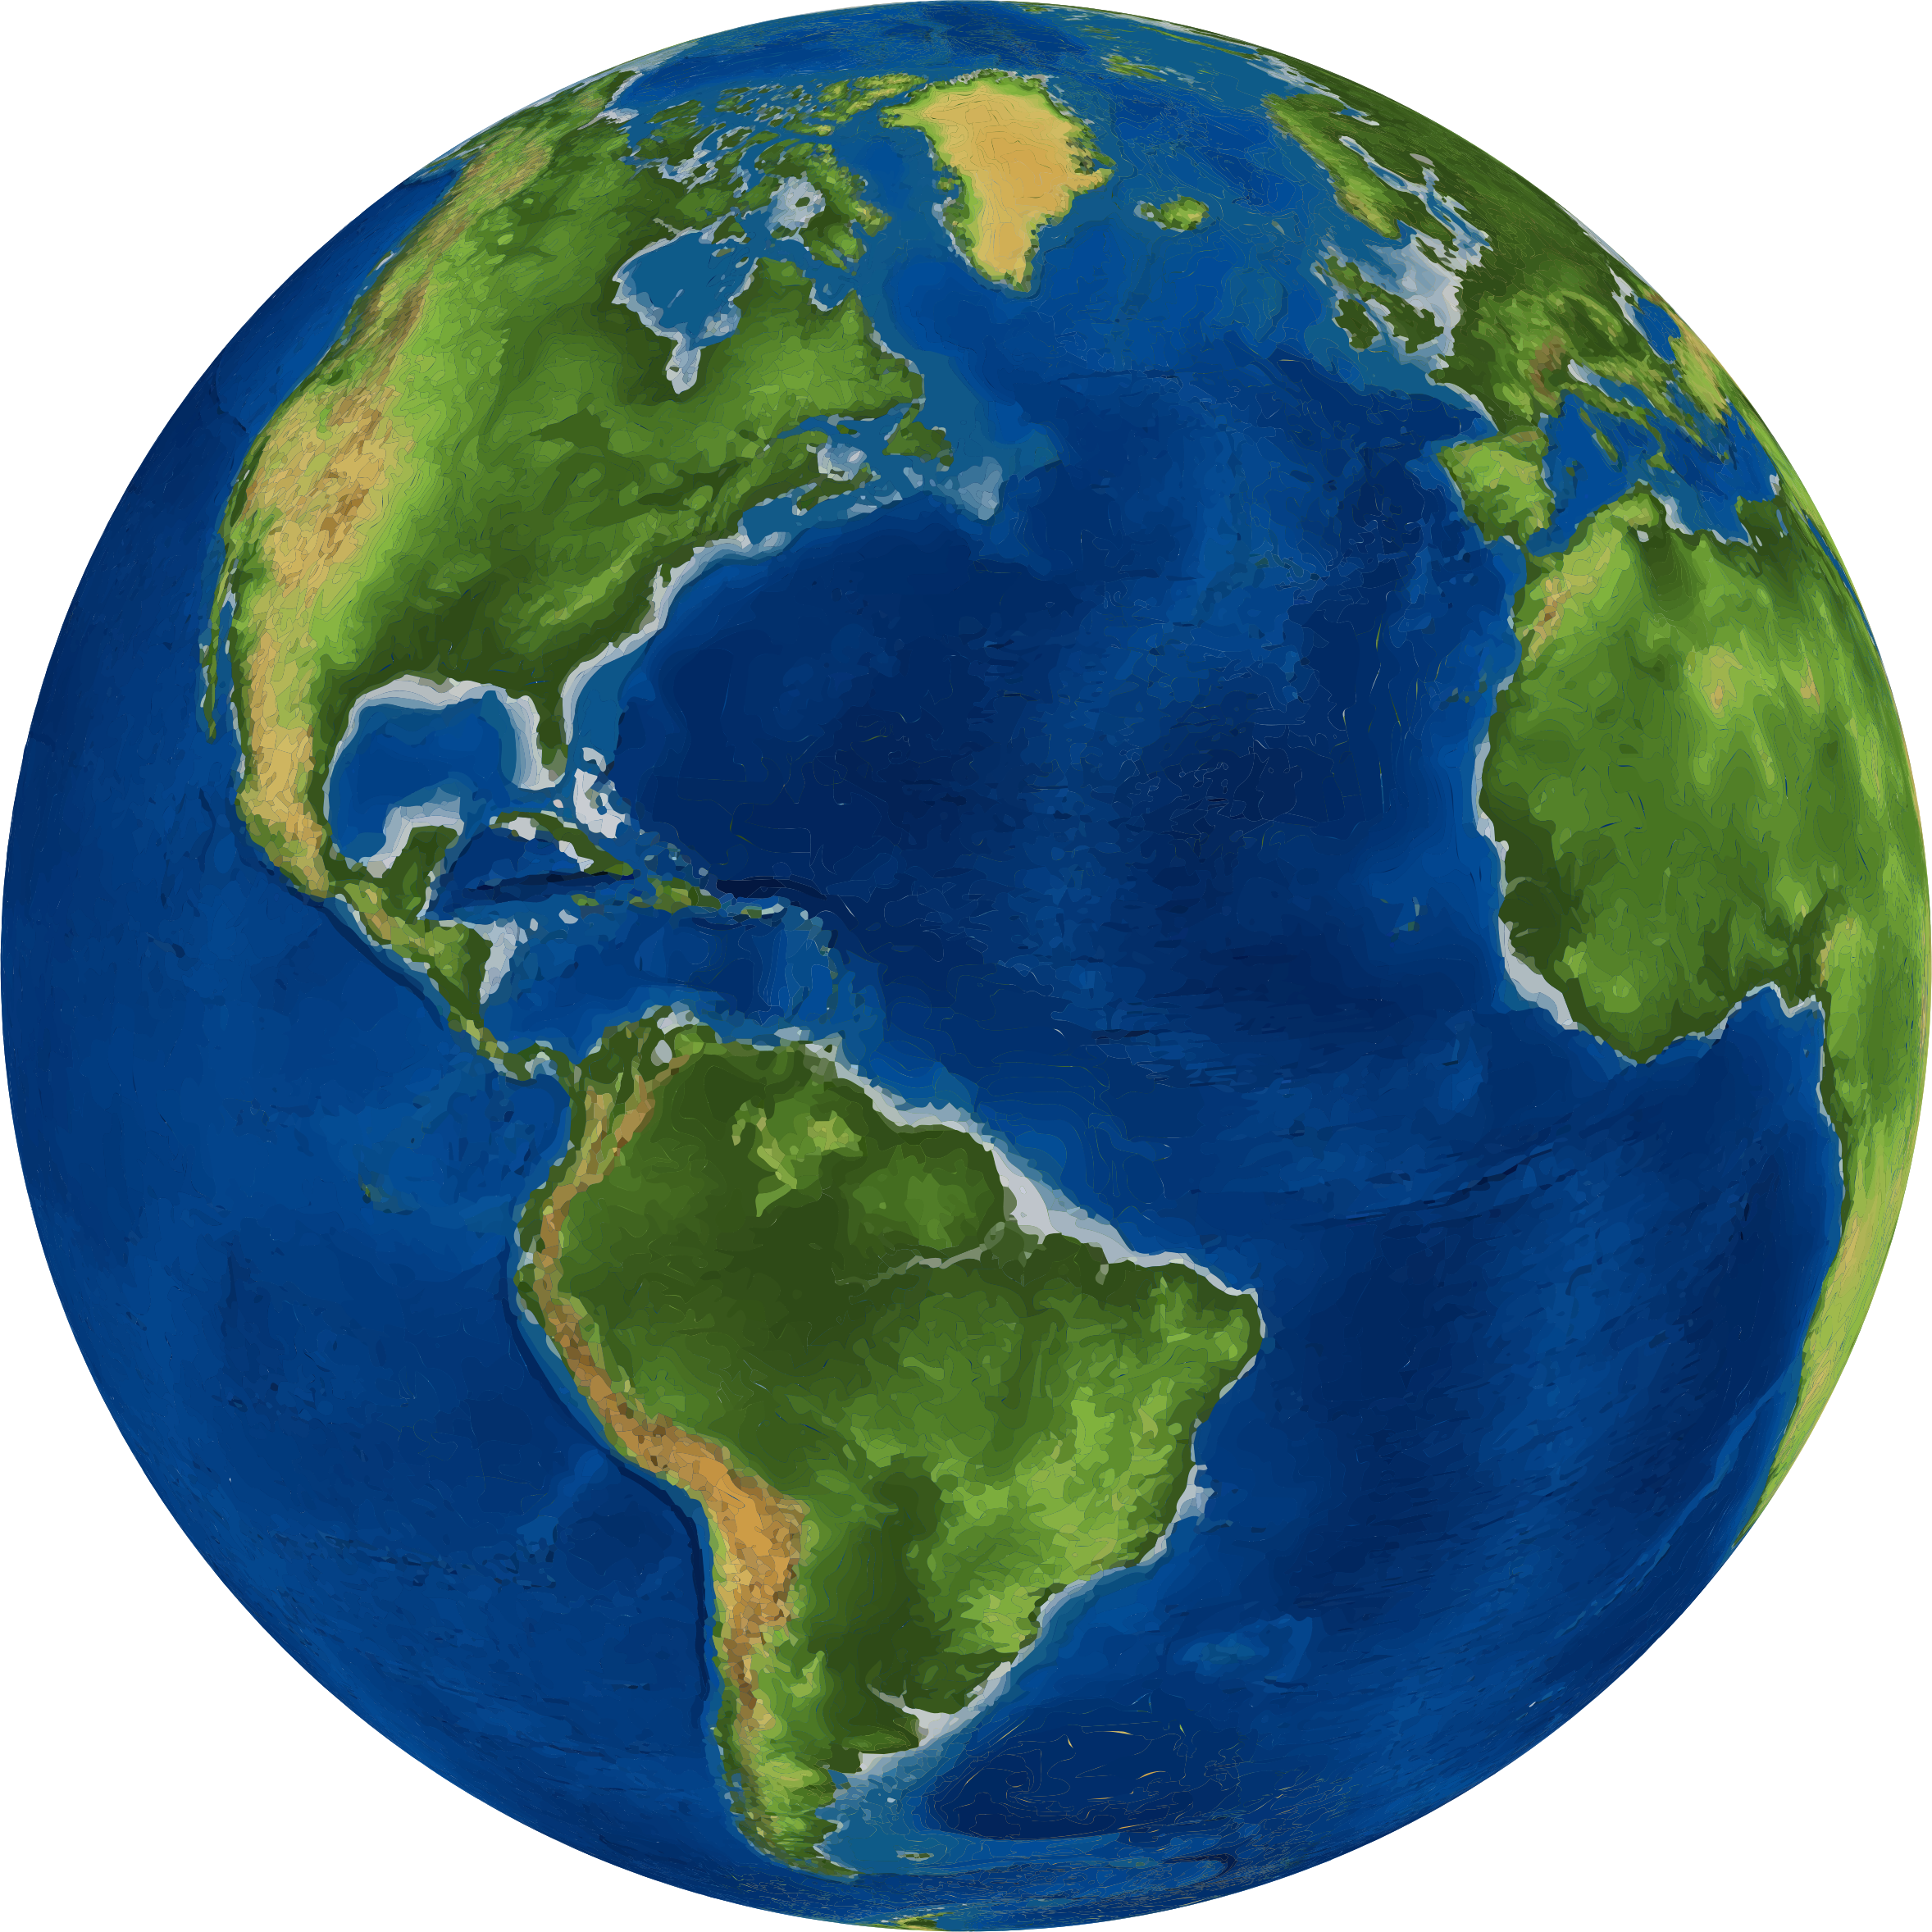 Png Format Images Of Earth image #25634